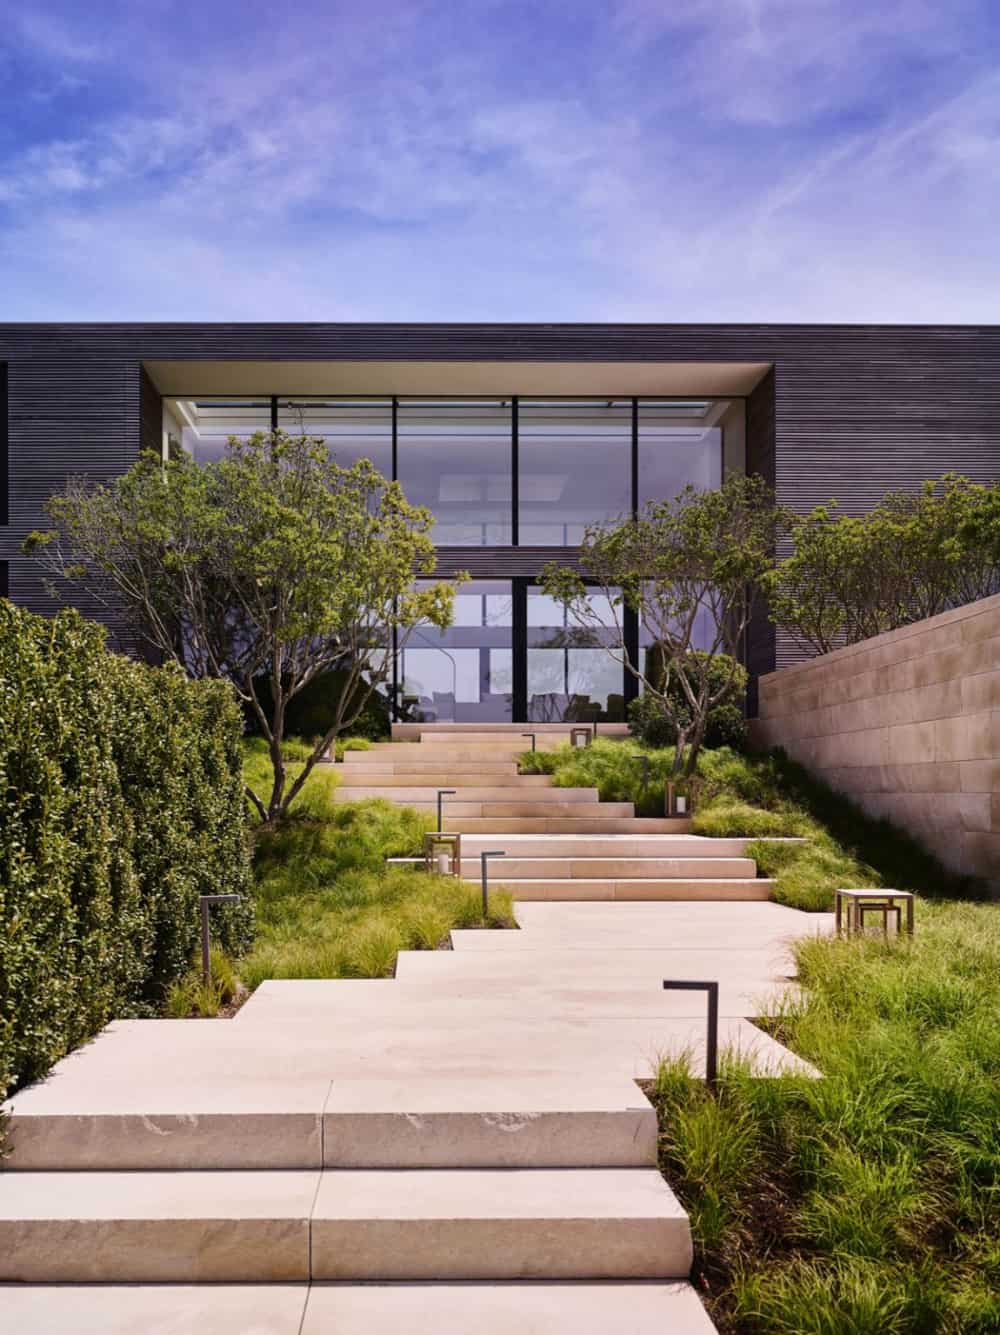 The staircase, leading from driveway, twist and turns to adapt to the landscape